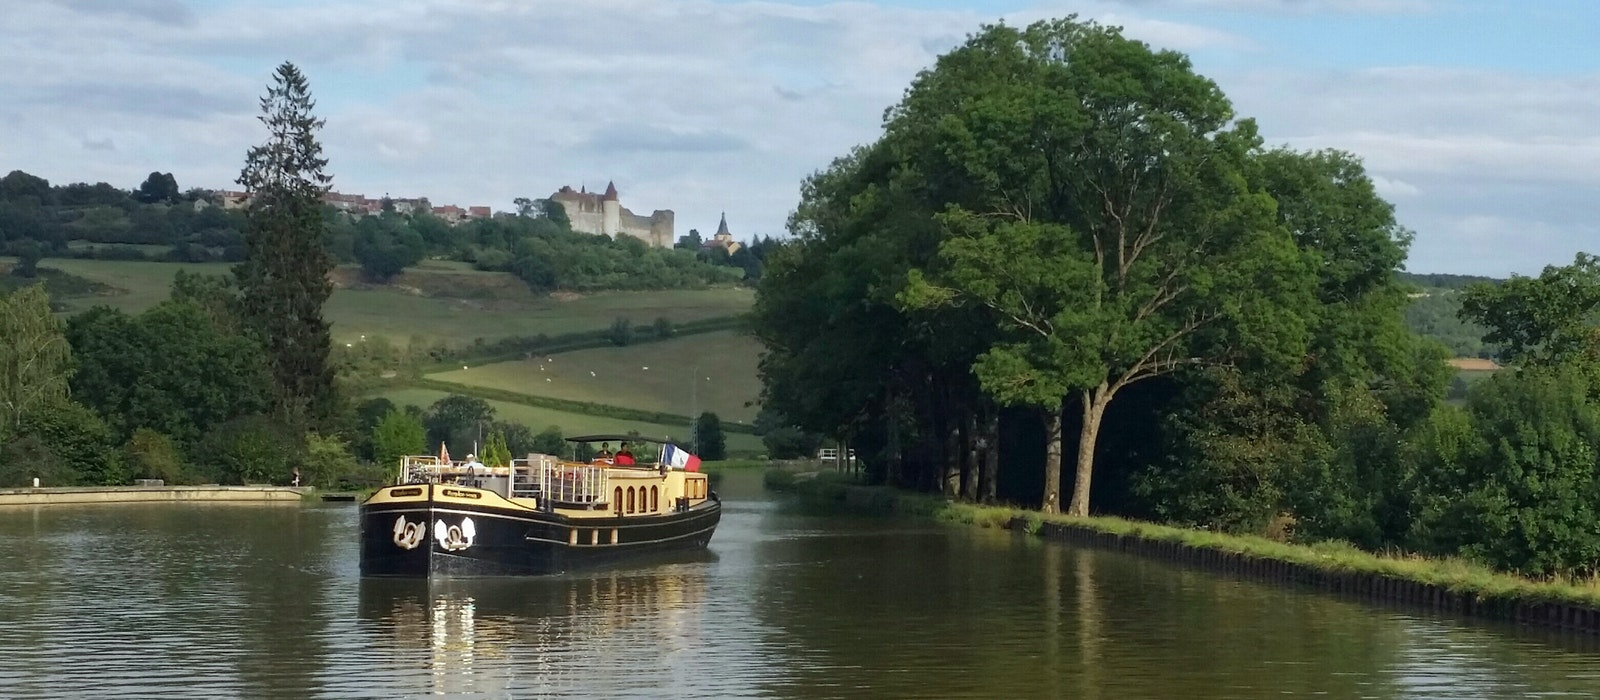 Barge cruises through the wine regions of France and other Europen countrysides give travelers a chance to savor life—and the destination—in the slow lane.